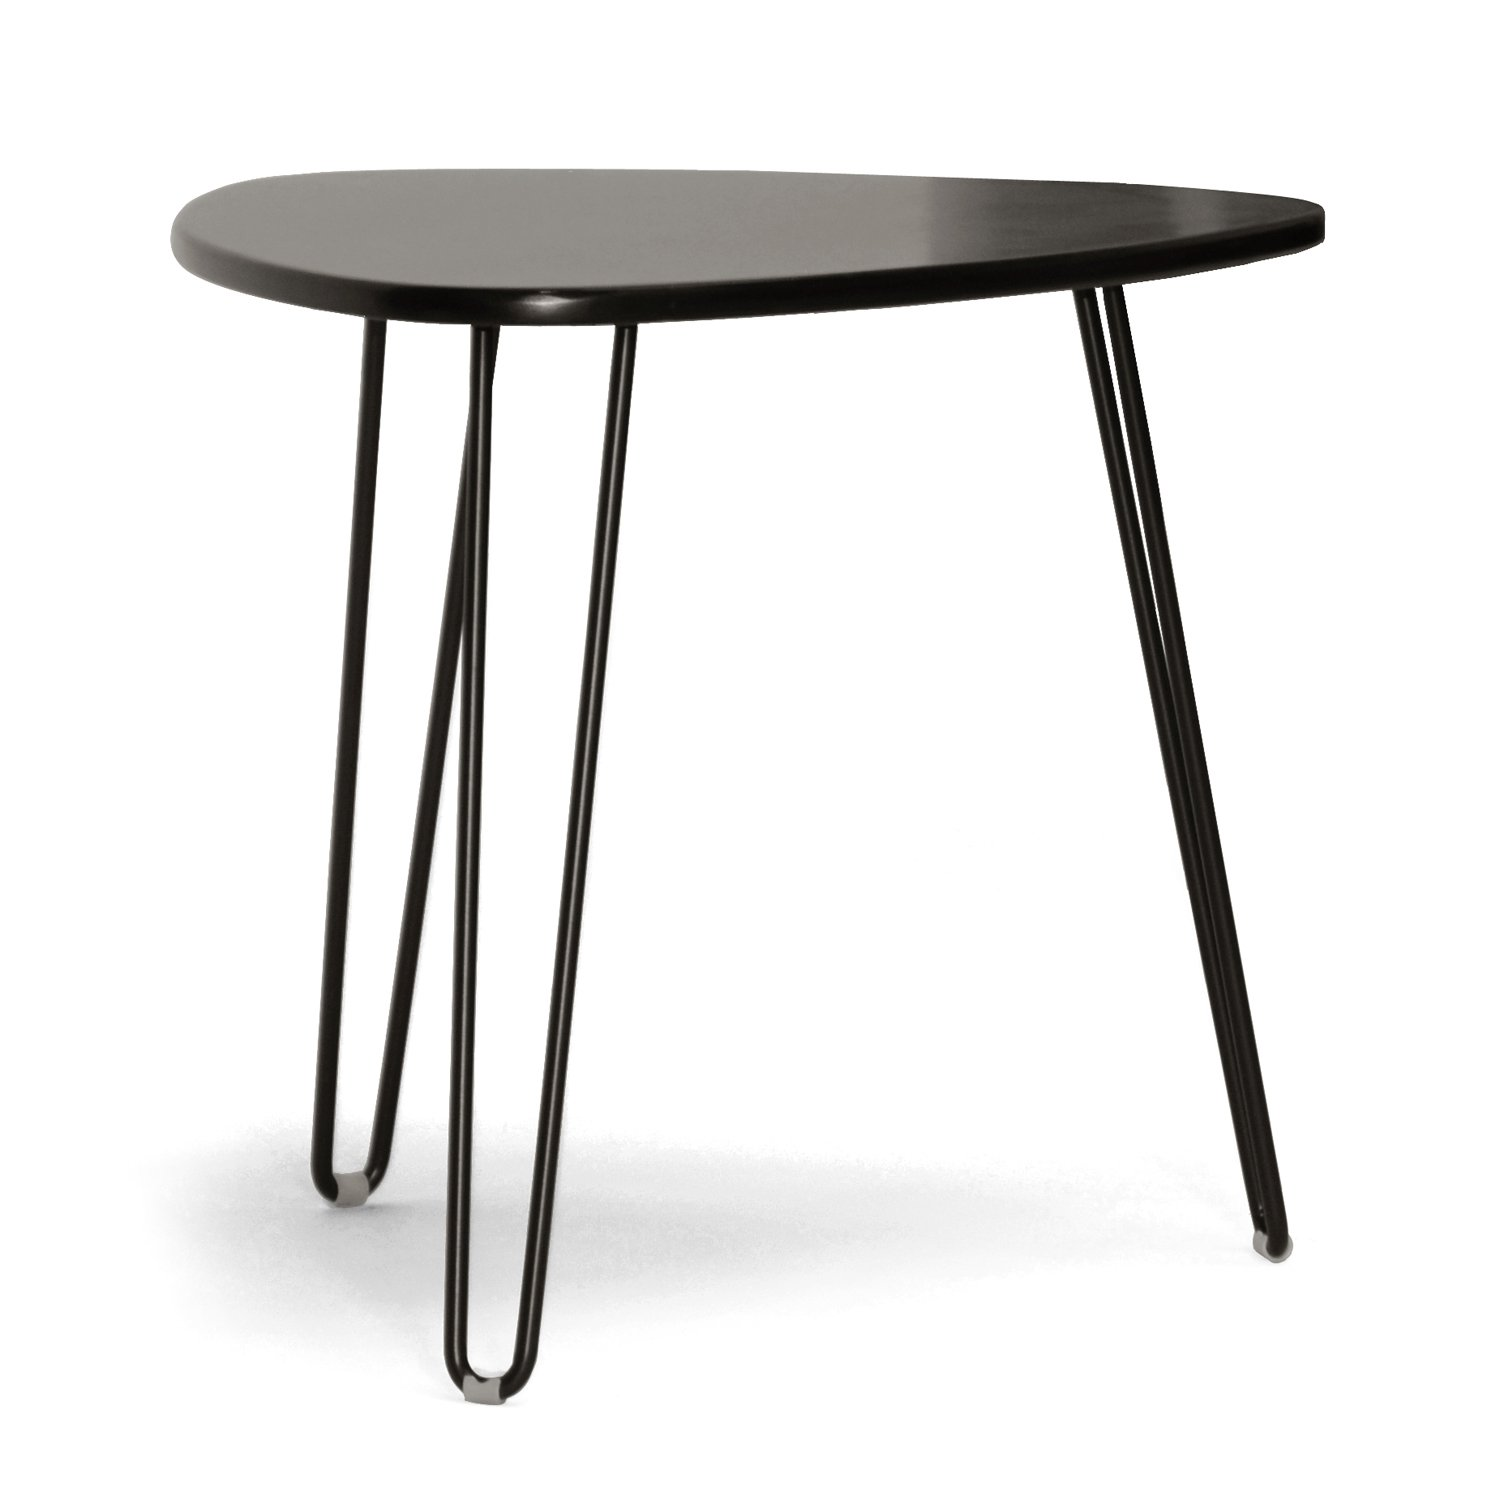 baxton studio leto dark brown modern accent table free shipping today glass nesting side tables dining room large shade umbrella fitted nic covers small laptop desk furniture